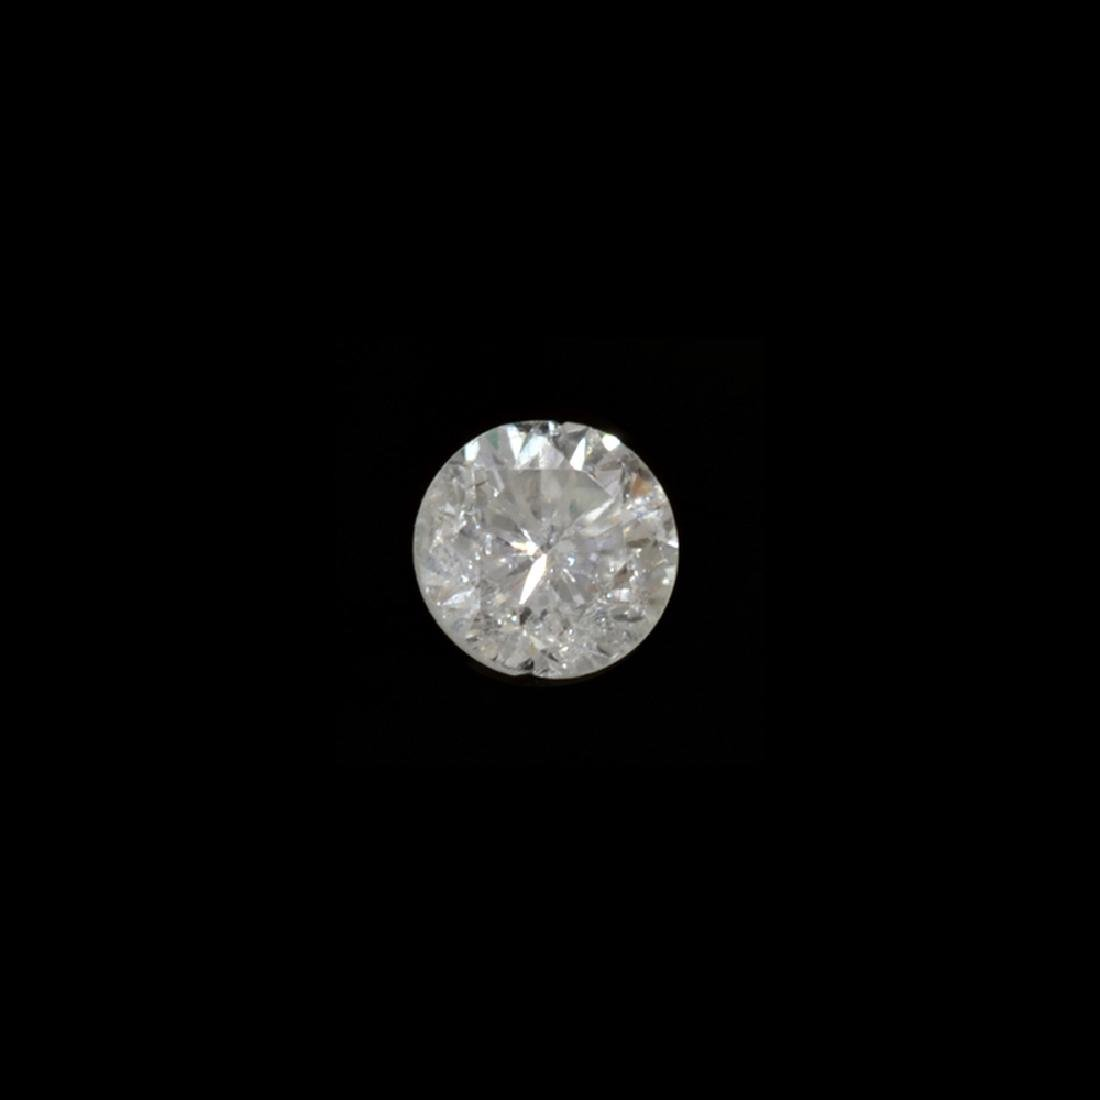 Fine Jewelry GIA Certified 0.20CT Round Brilliant Cut